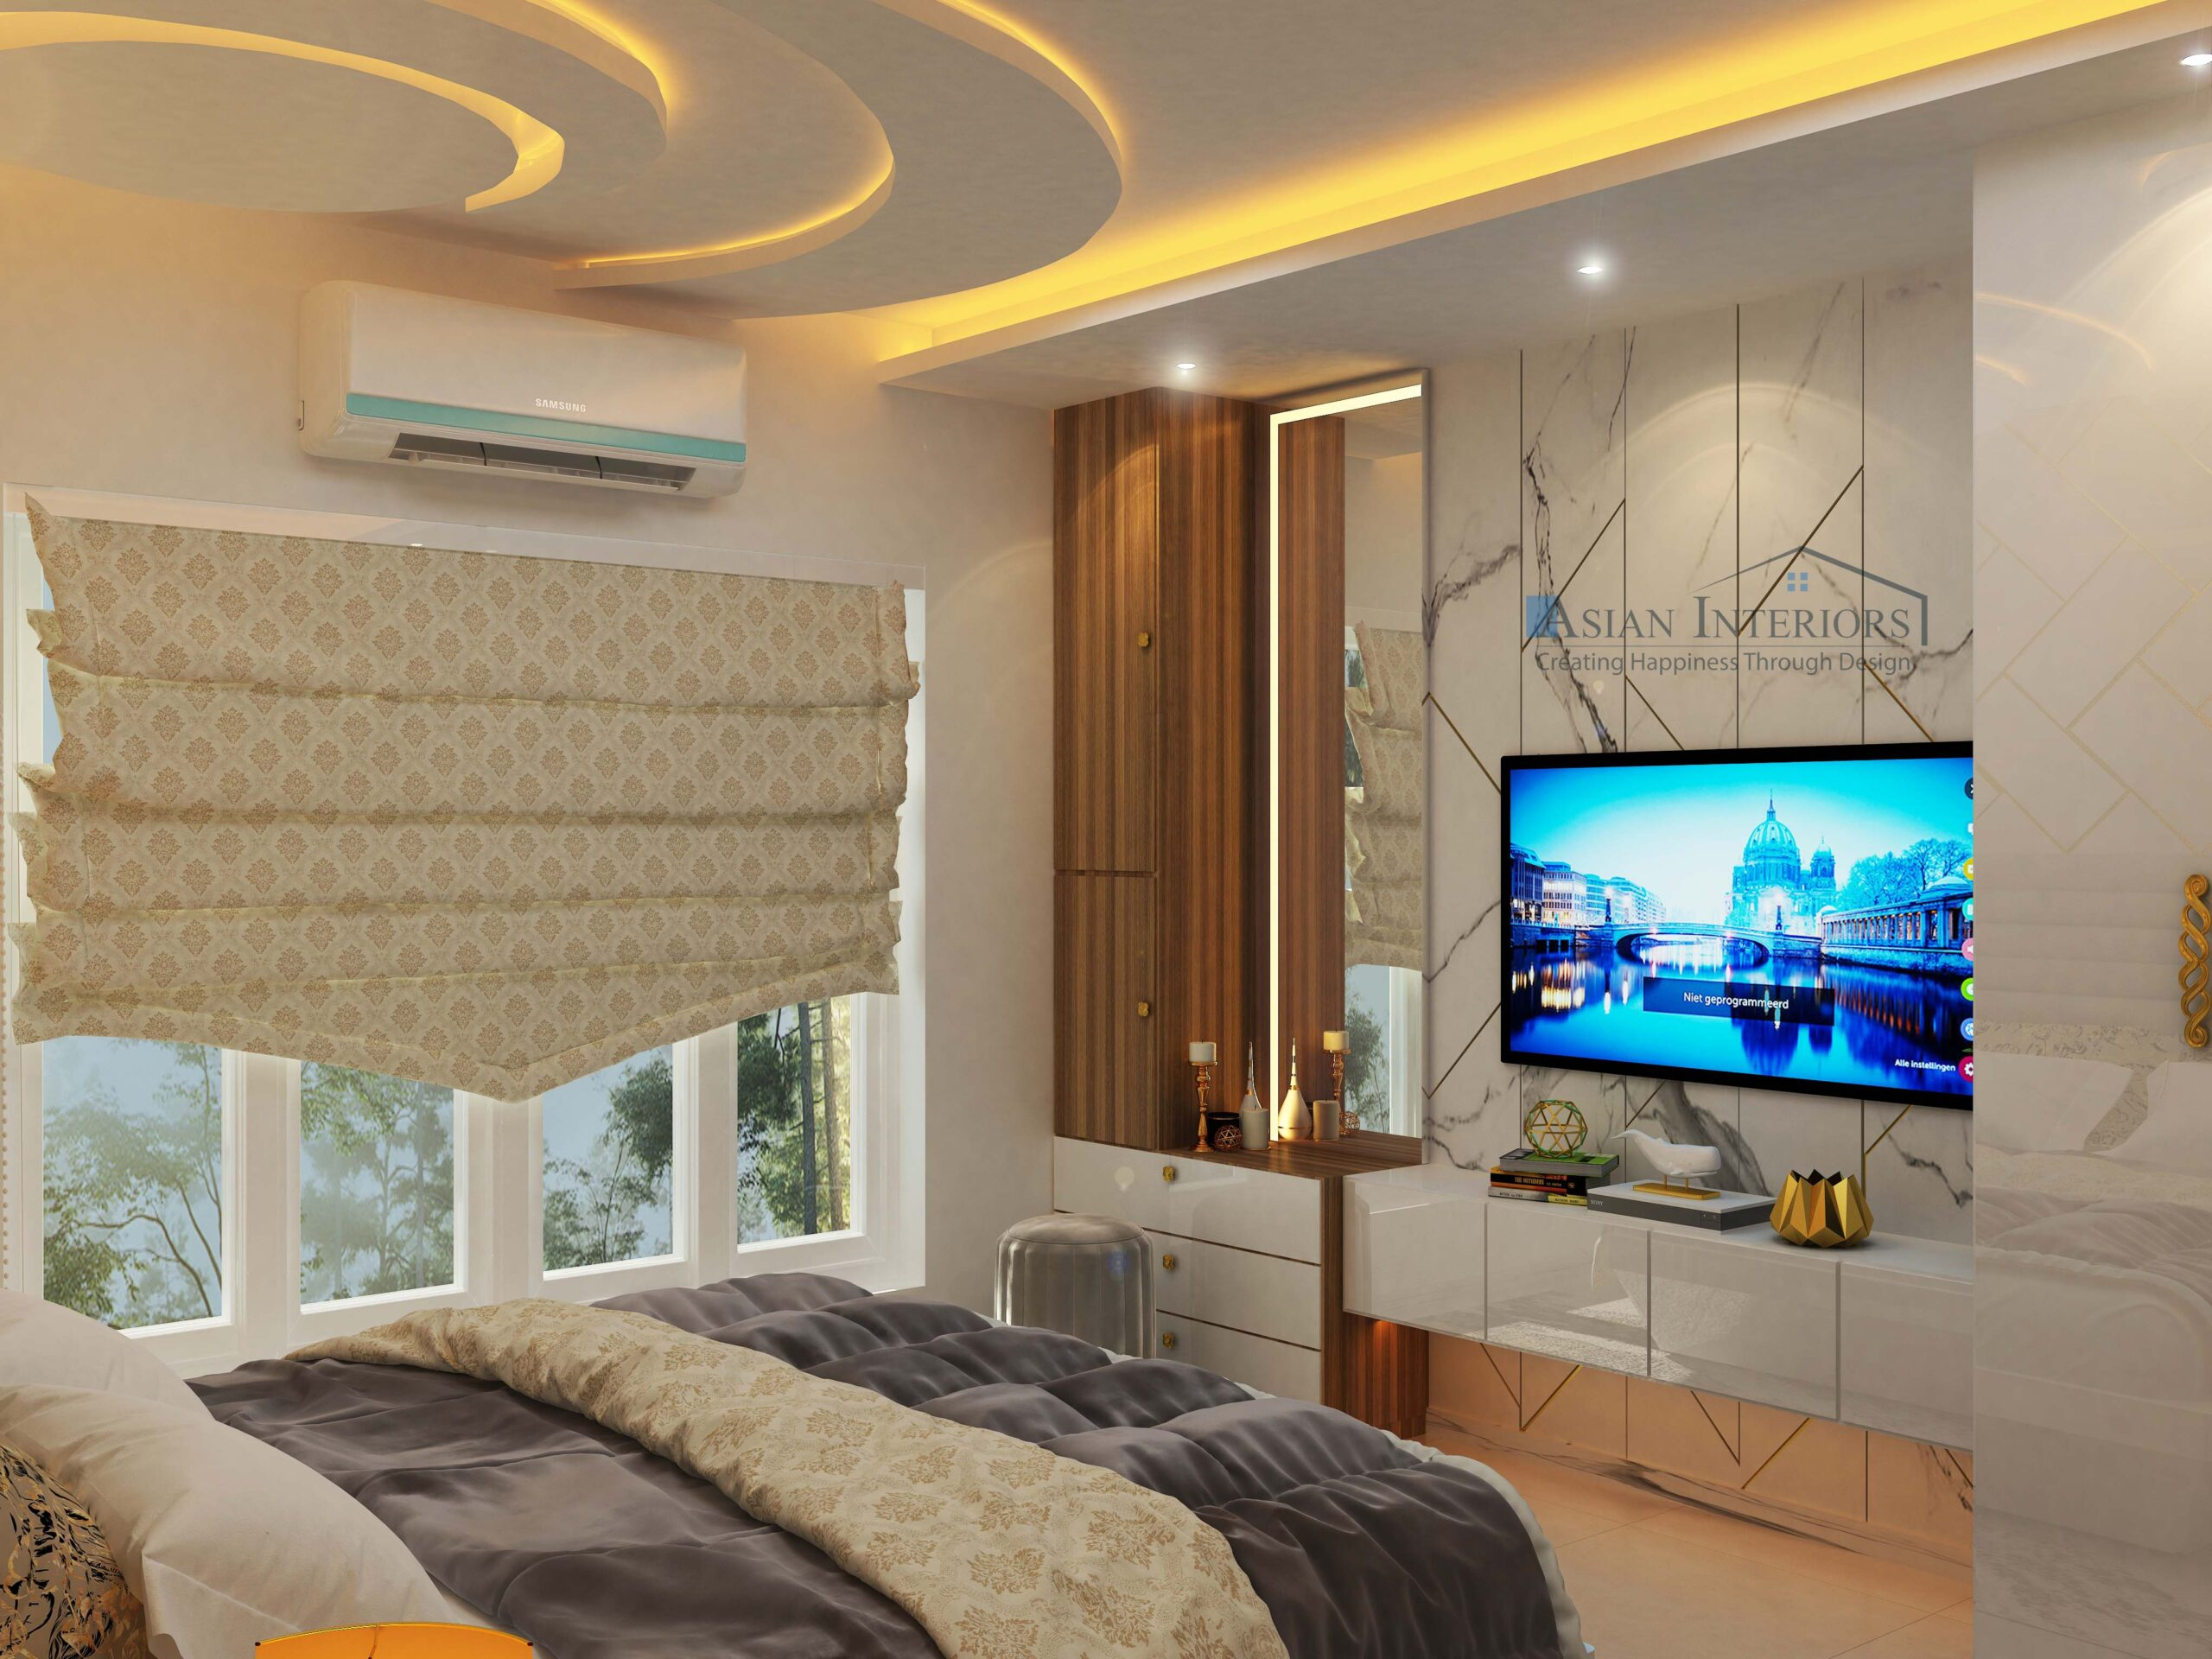 MR. SHARMA MASTER BED ROOM VIEW 02